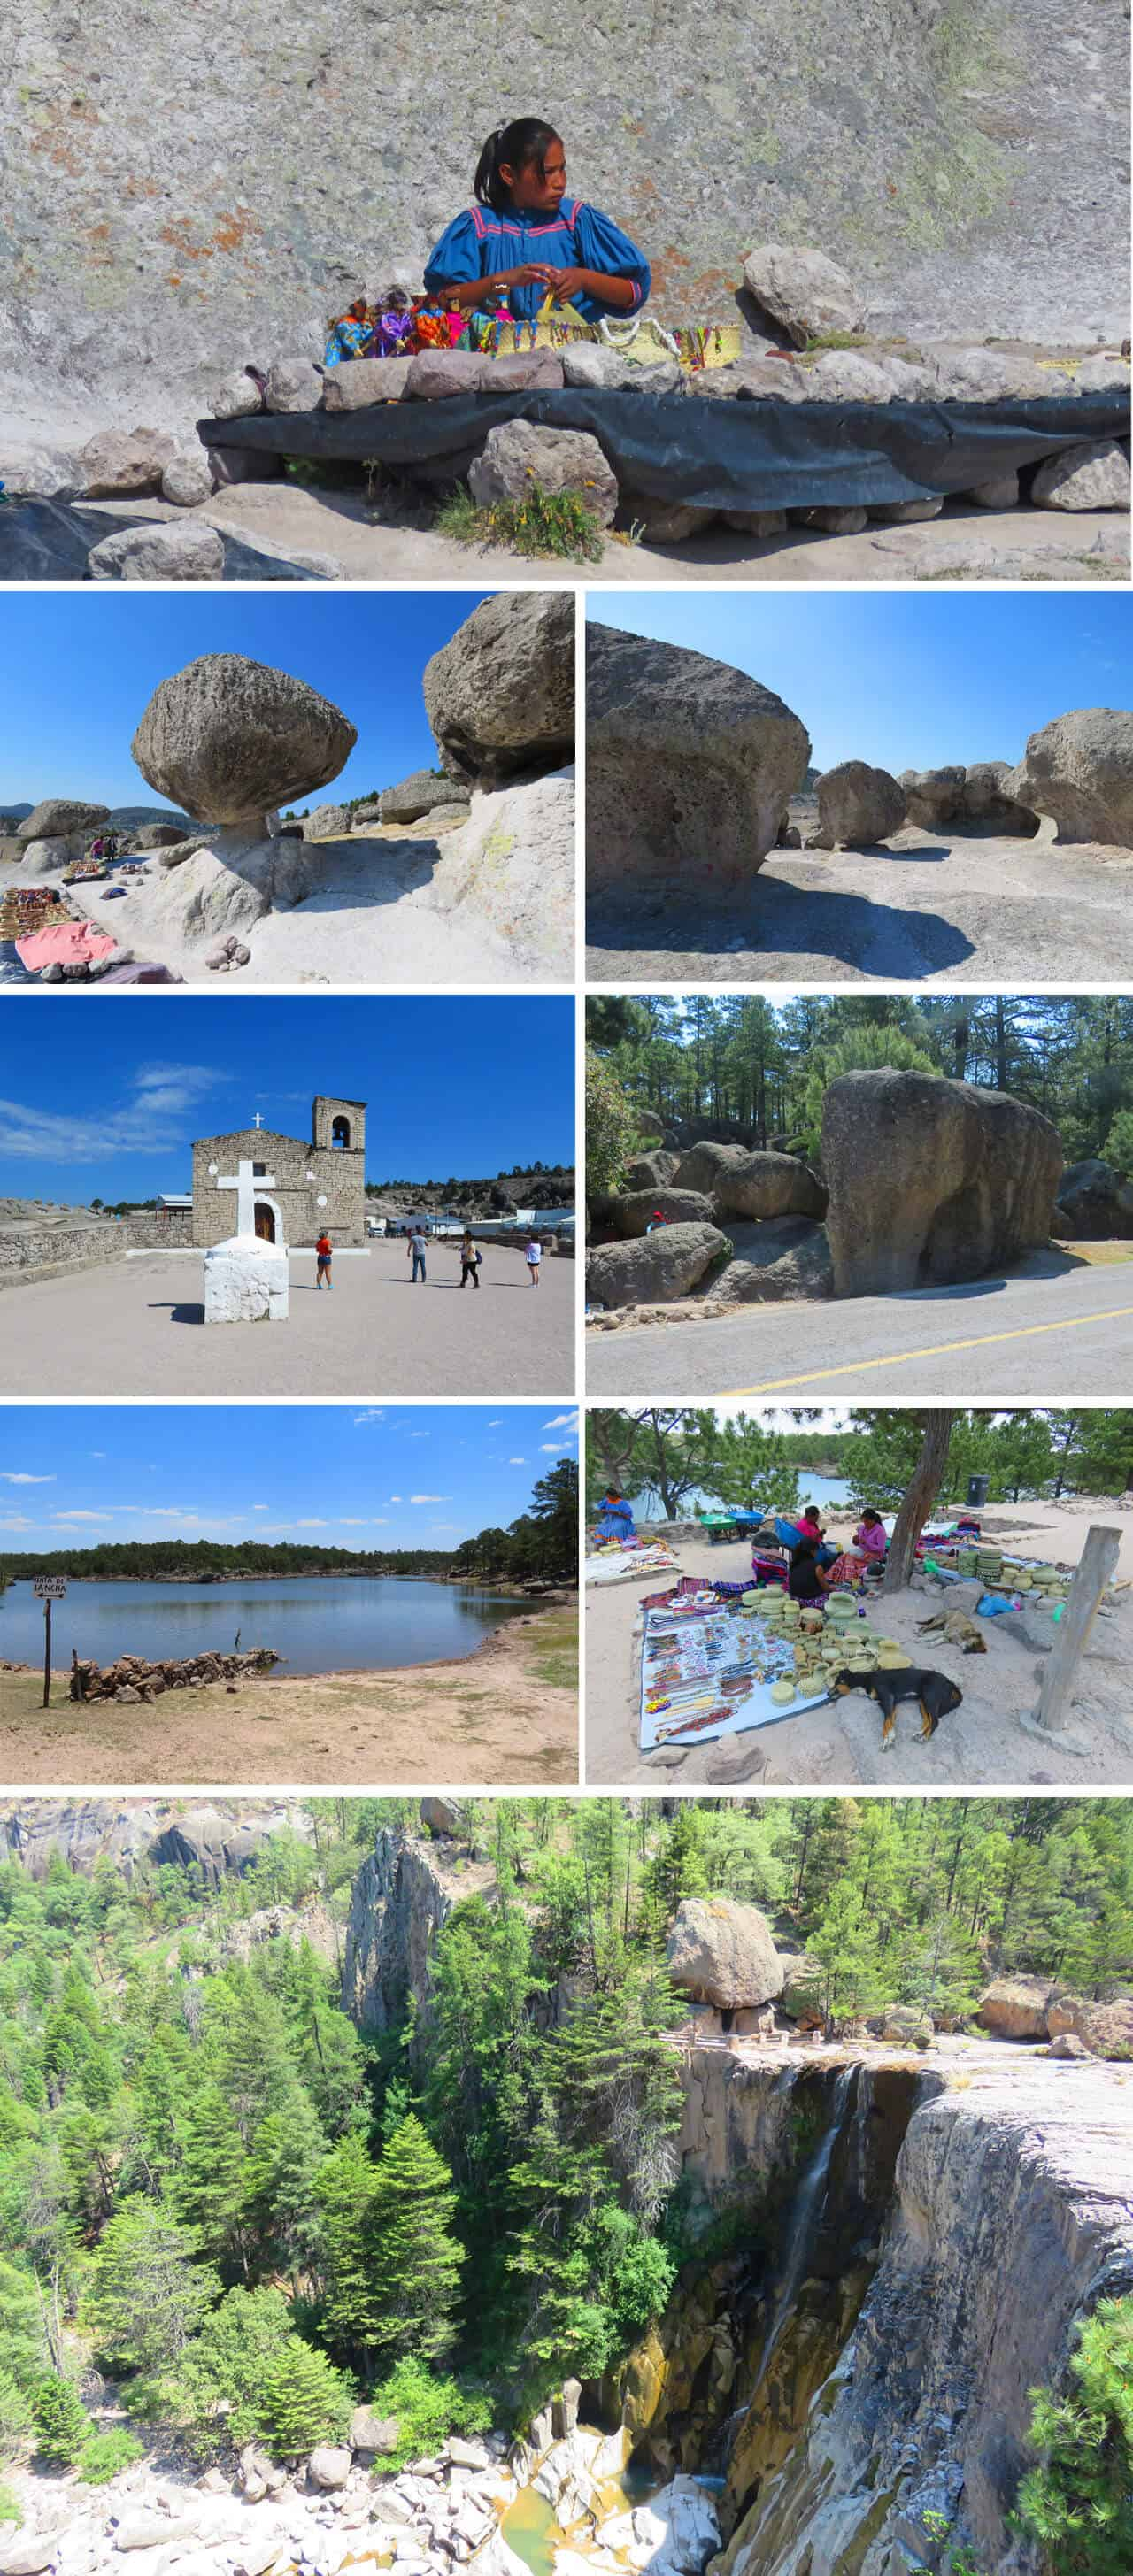 tours in Creel Mexico